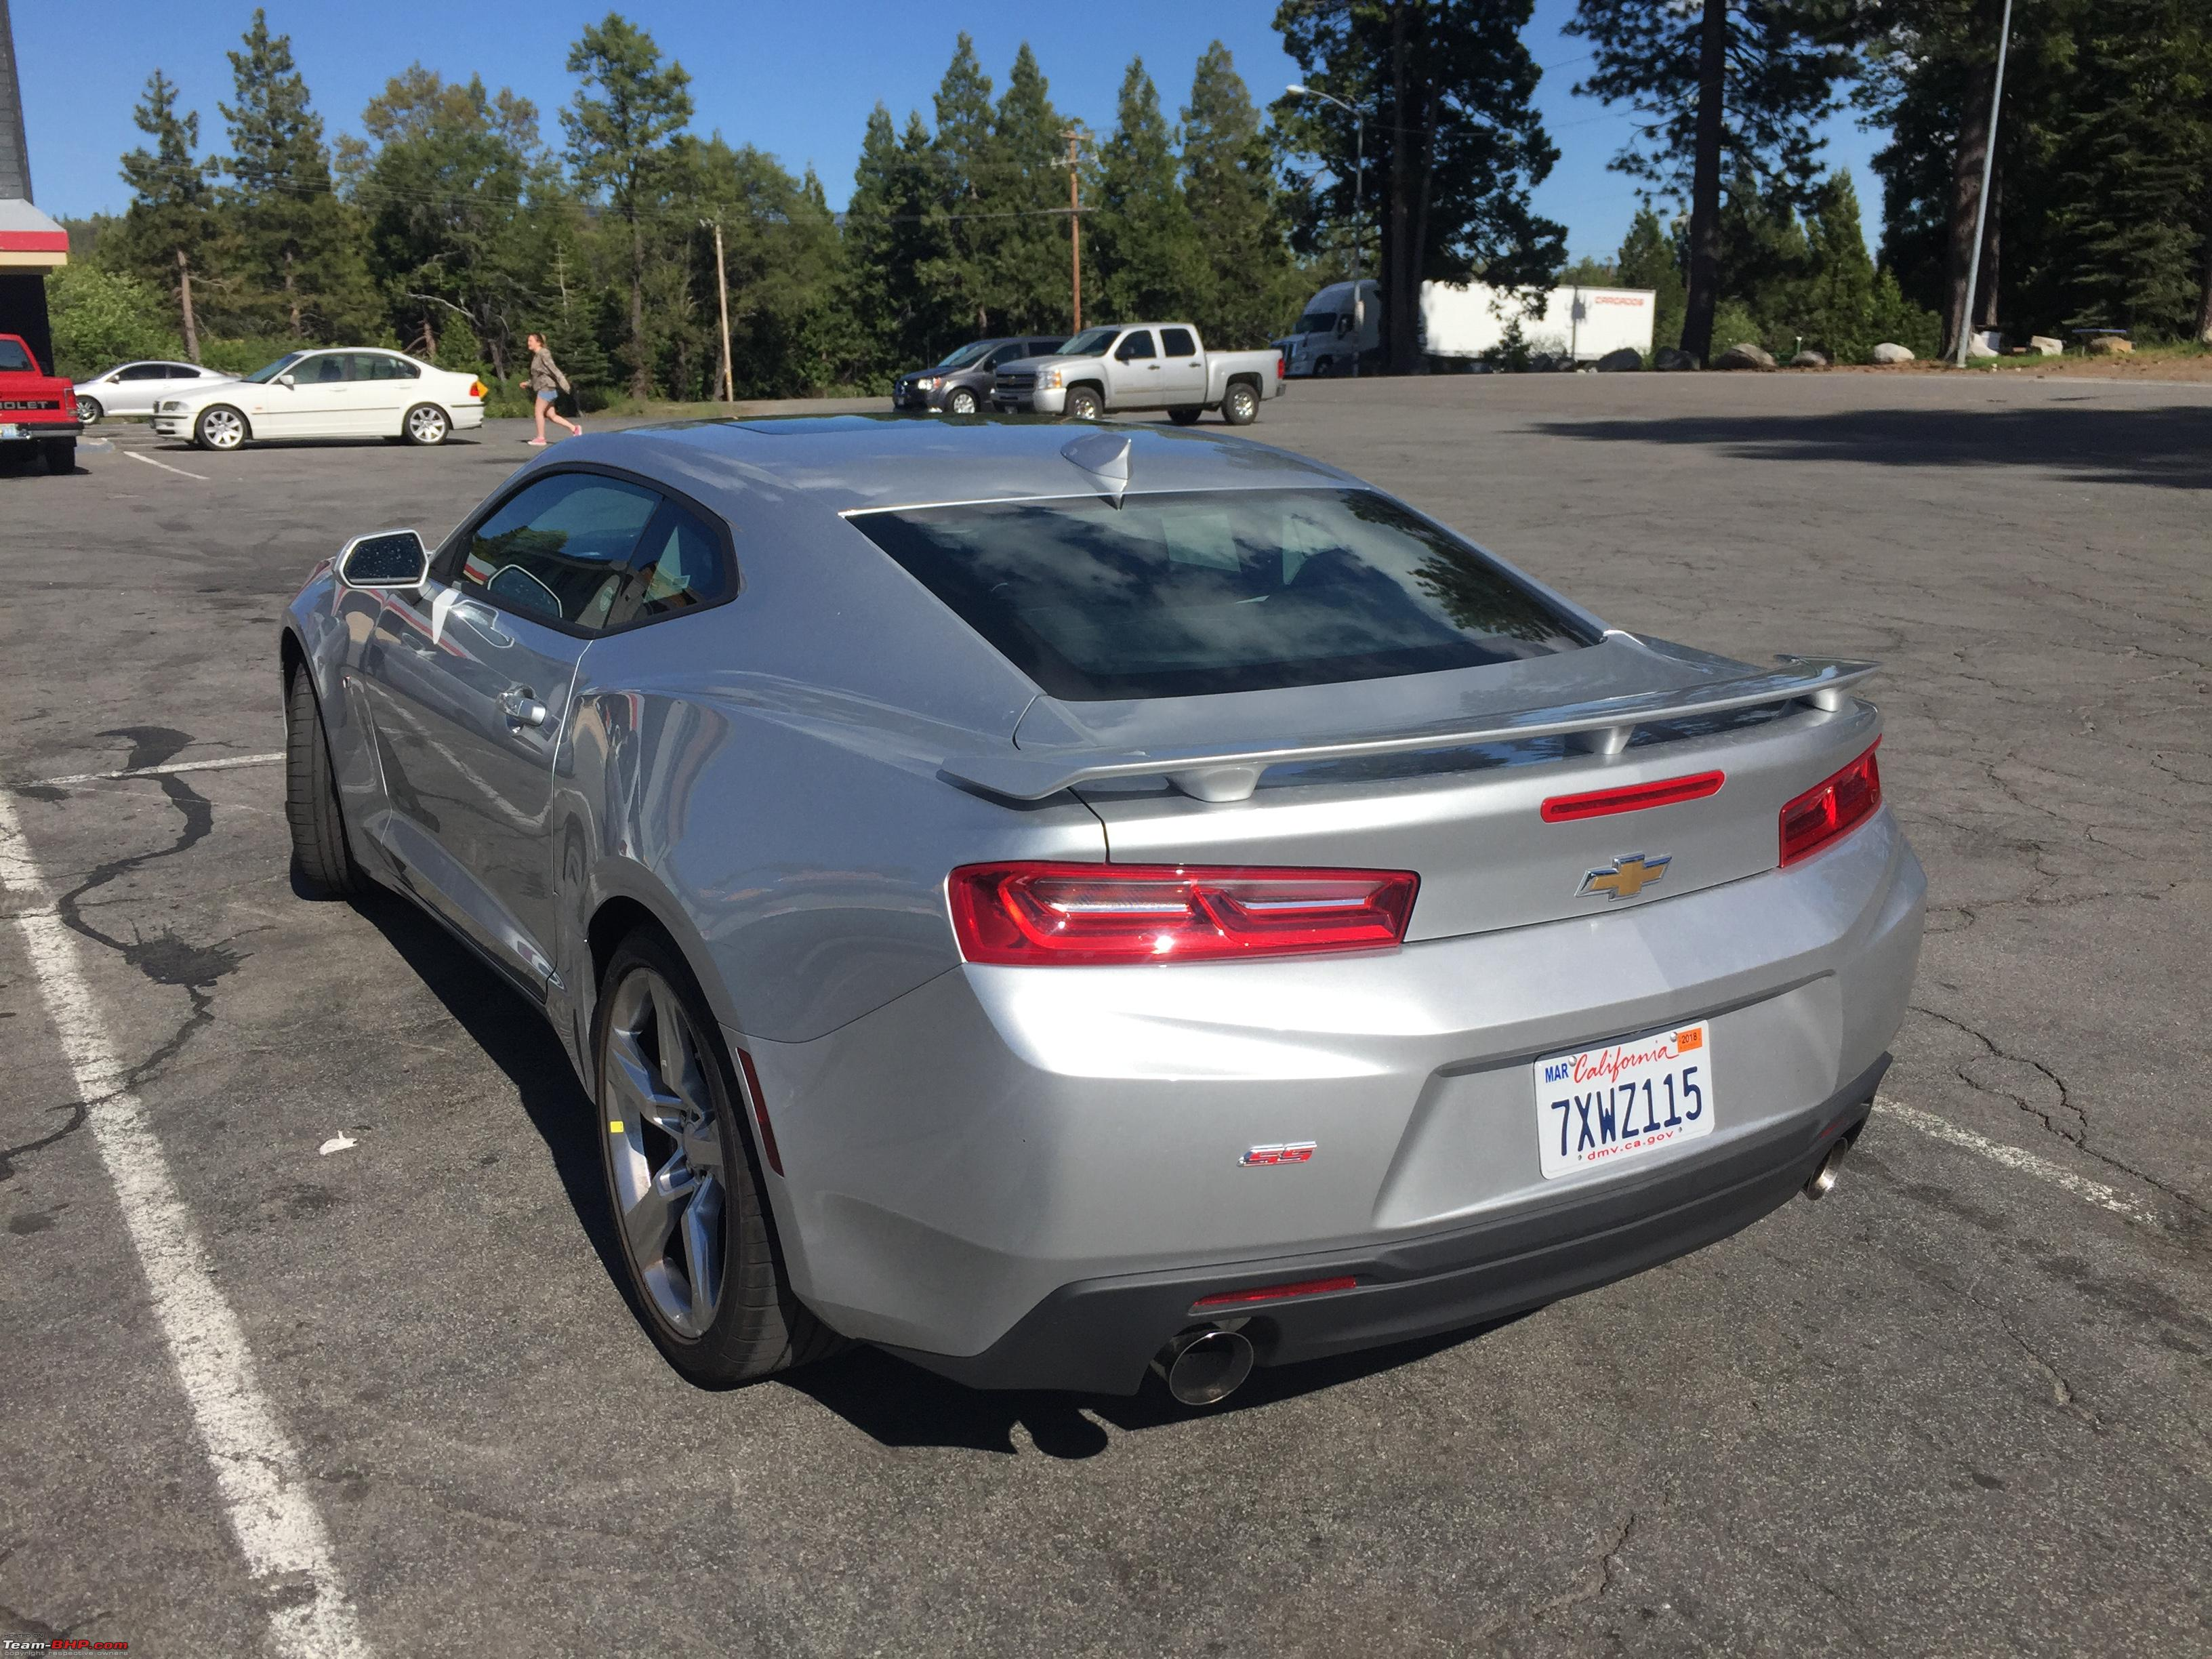 A date with the 2017 chevrolet camaro ss 6 2l 455 hp v8 img_8915